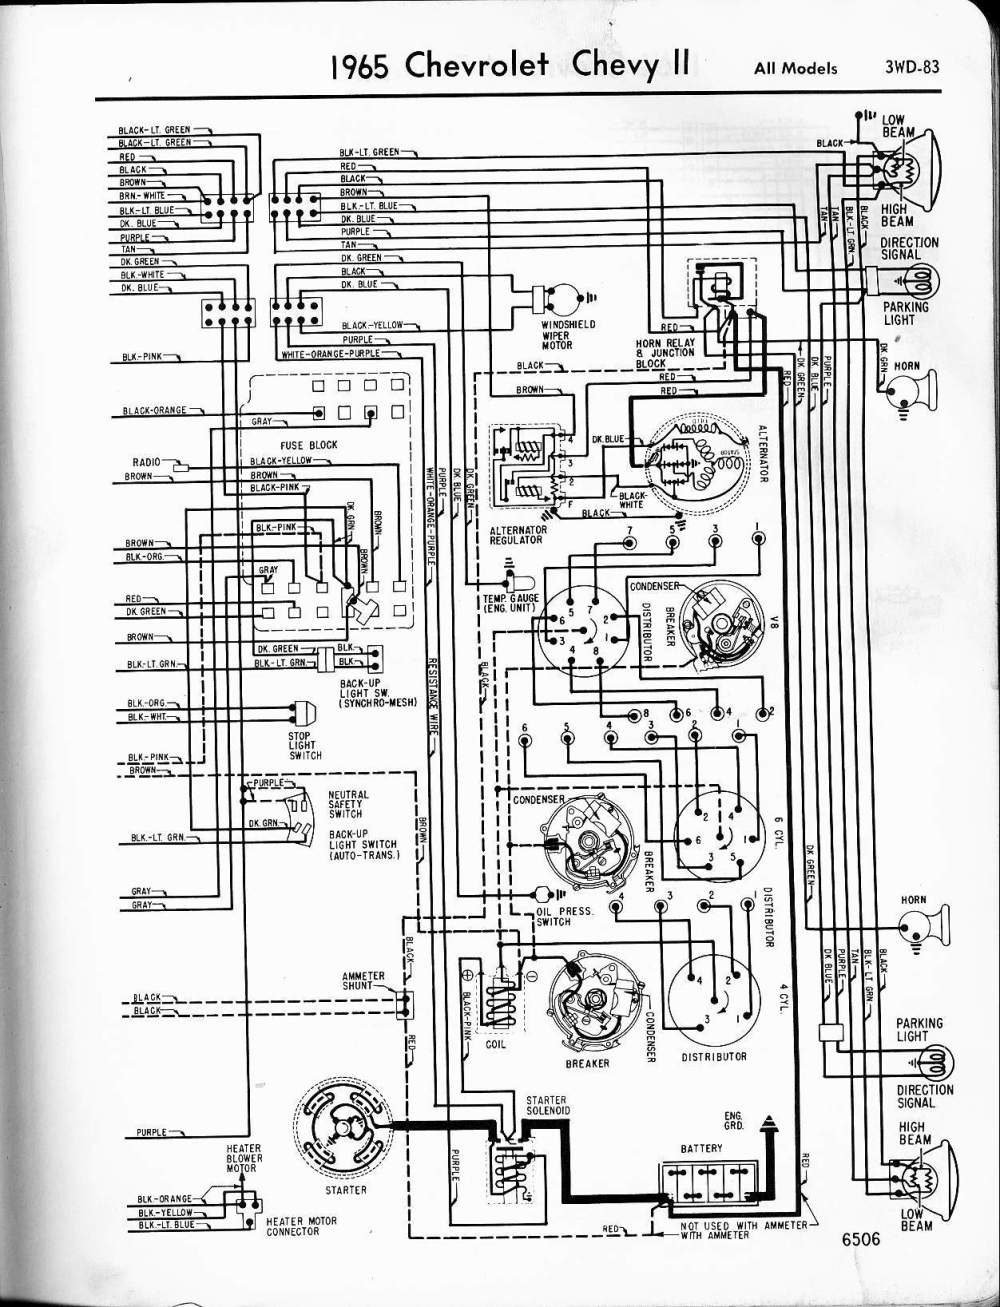 70 nova wiring diagram 70 nova wiring harness diagram wiring diagram data  70 nova wiring harness diagram wiring